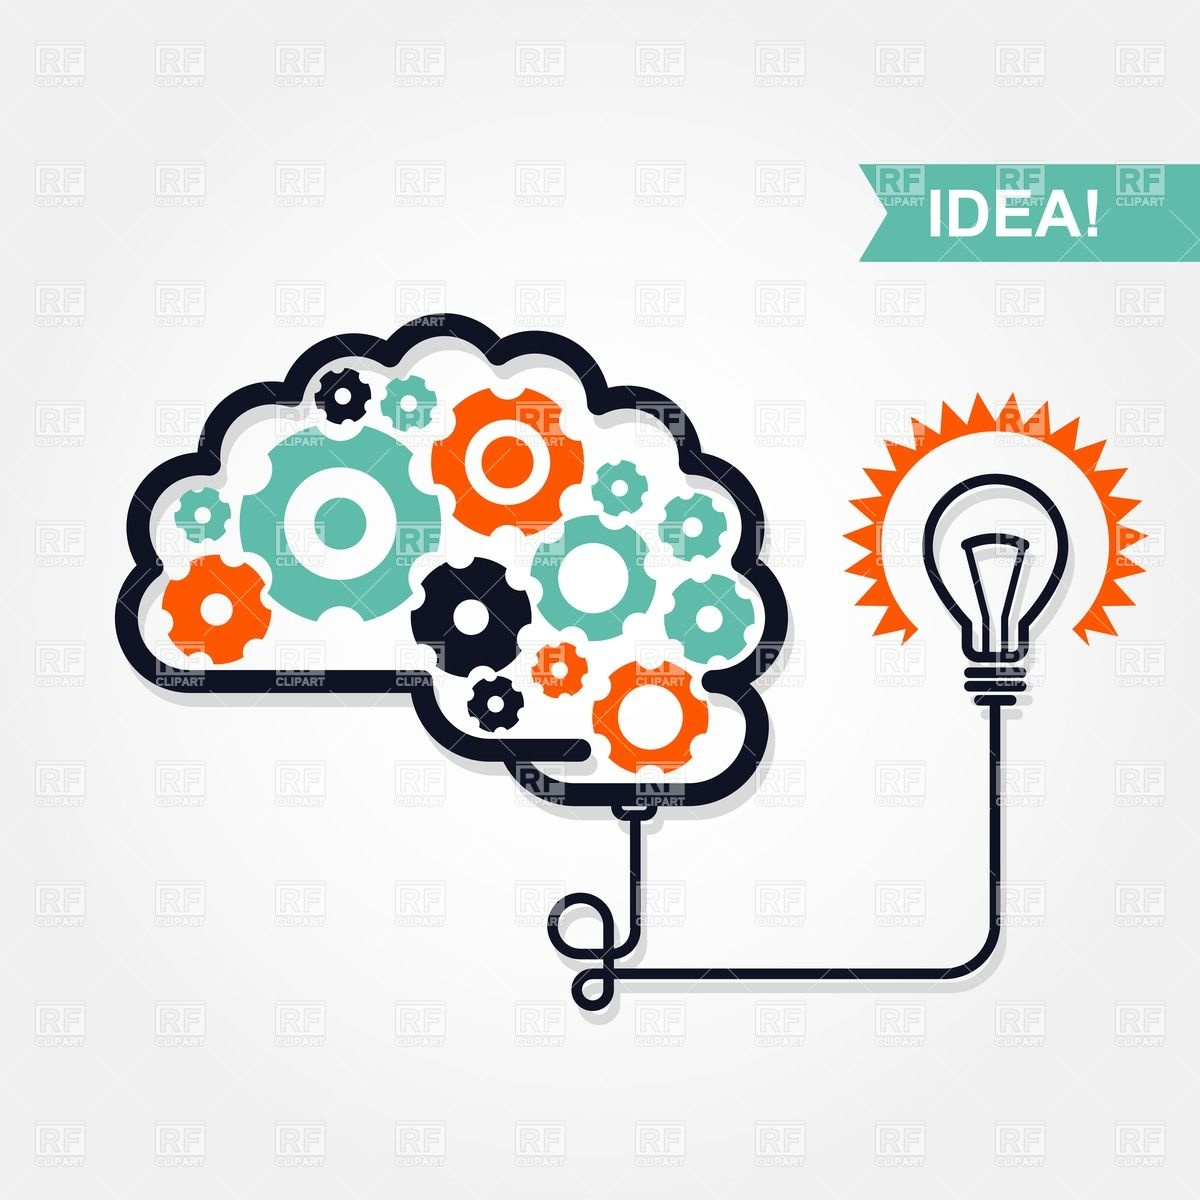 14 Idea Icon Free Images